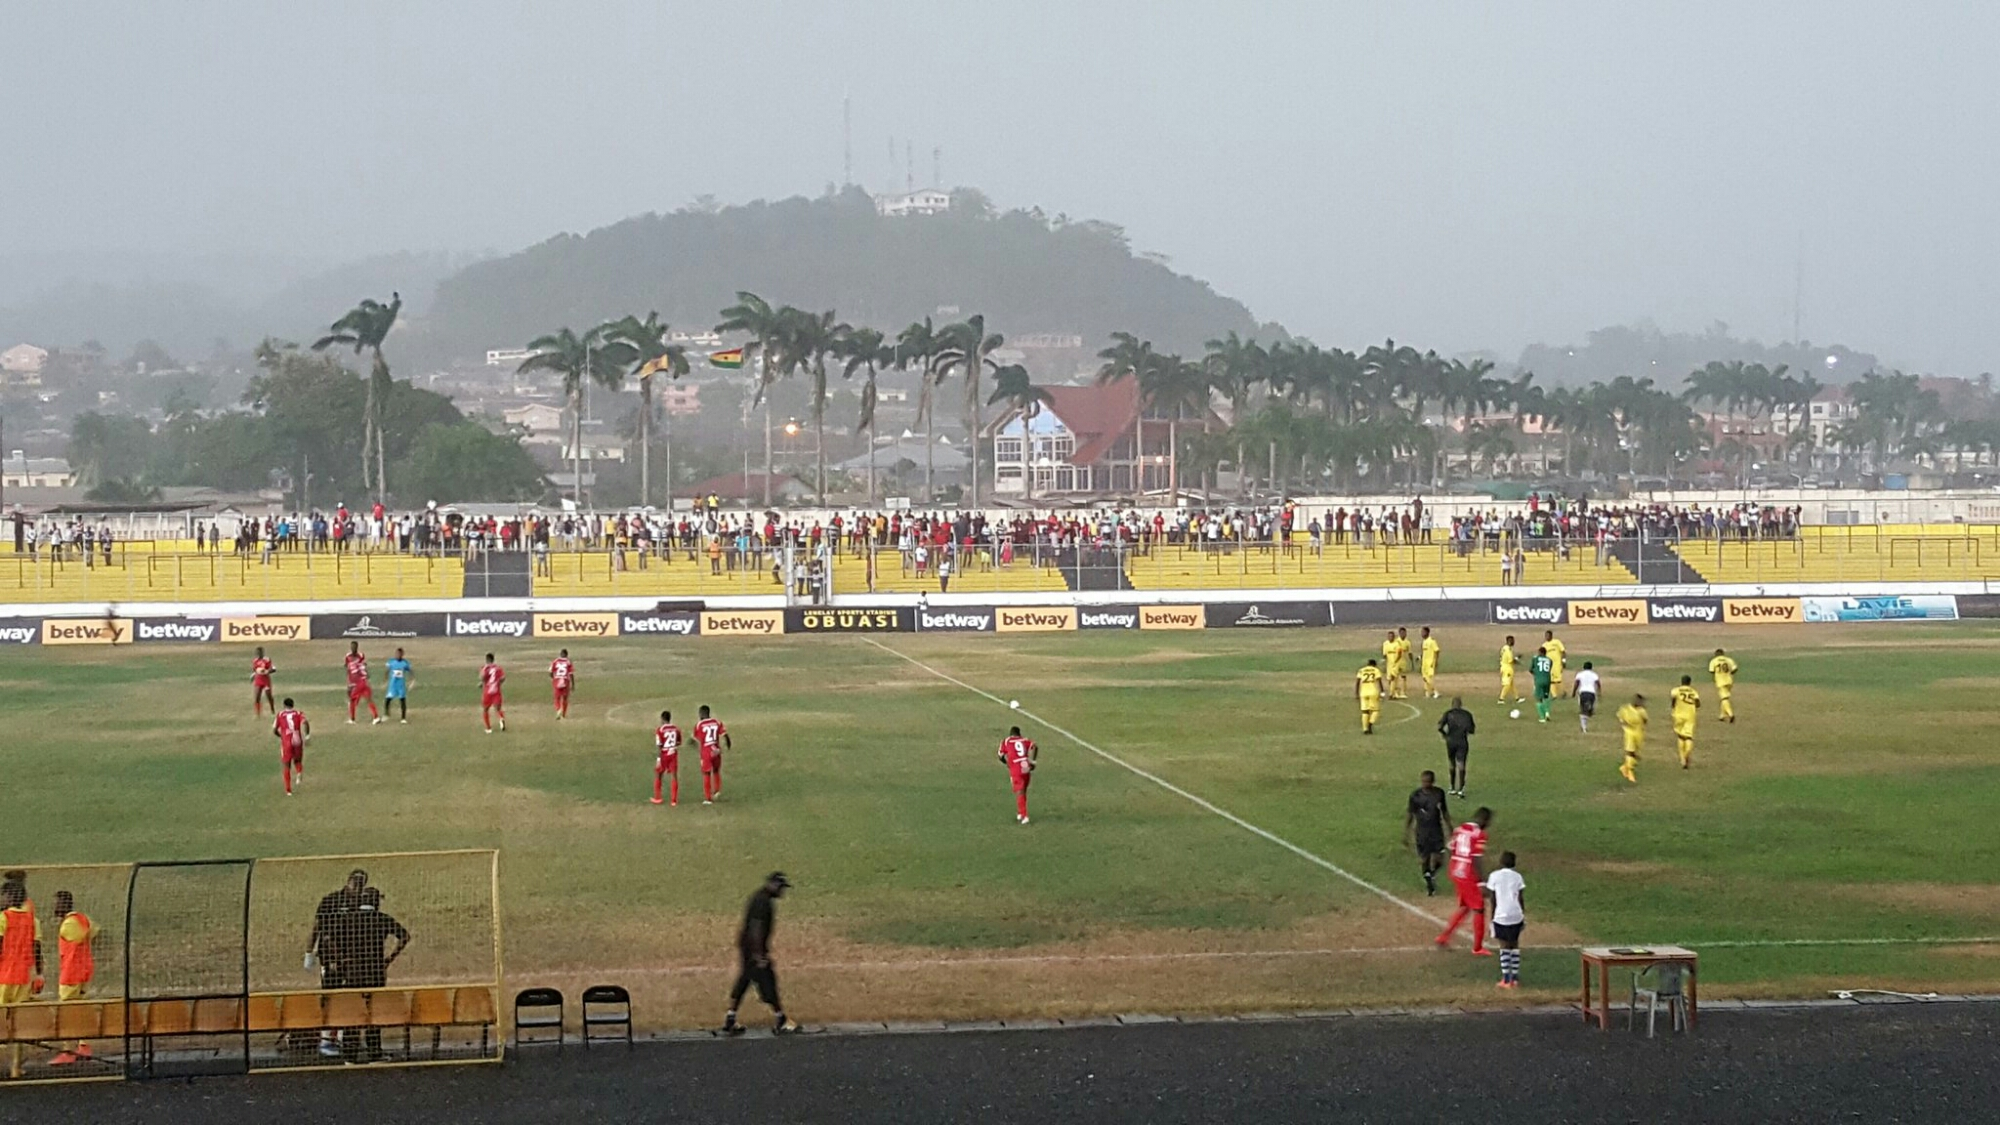 Ashanti Gold-Asante Kotoko game called off after first half due to heavy rain